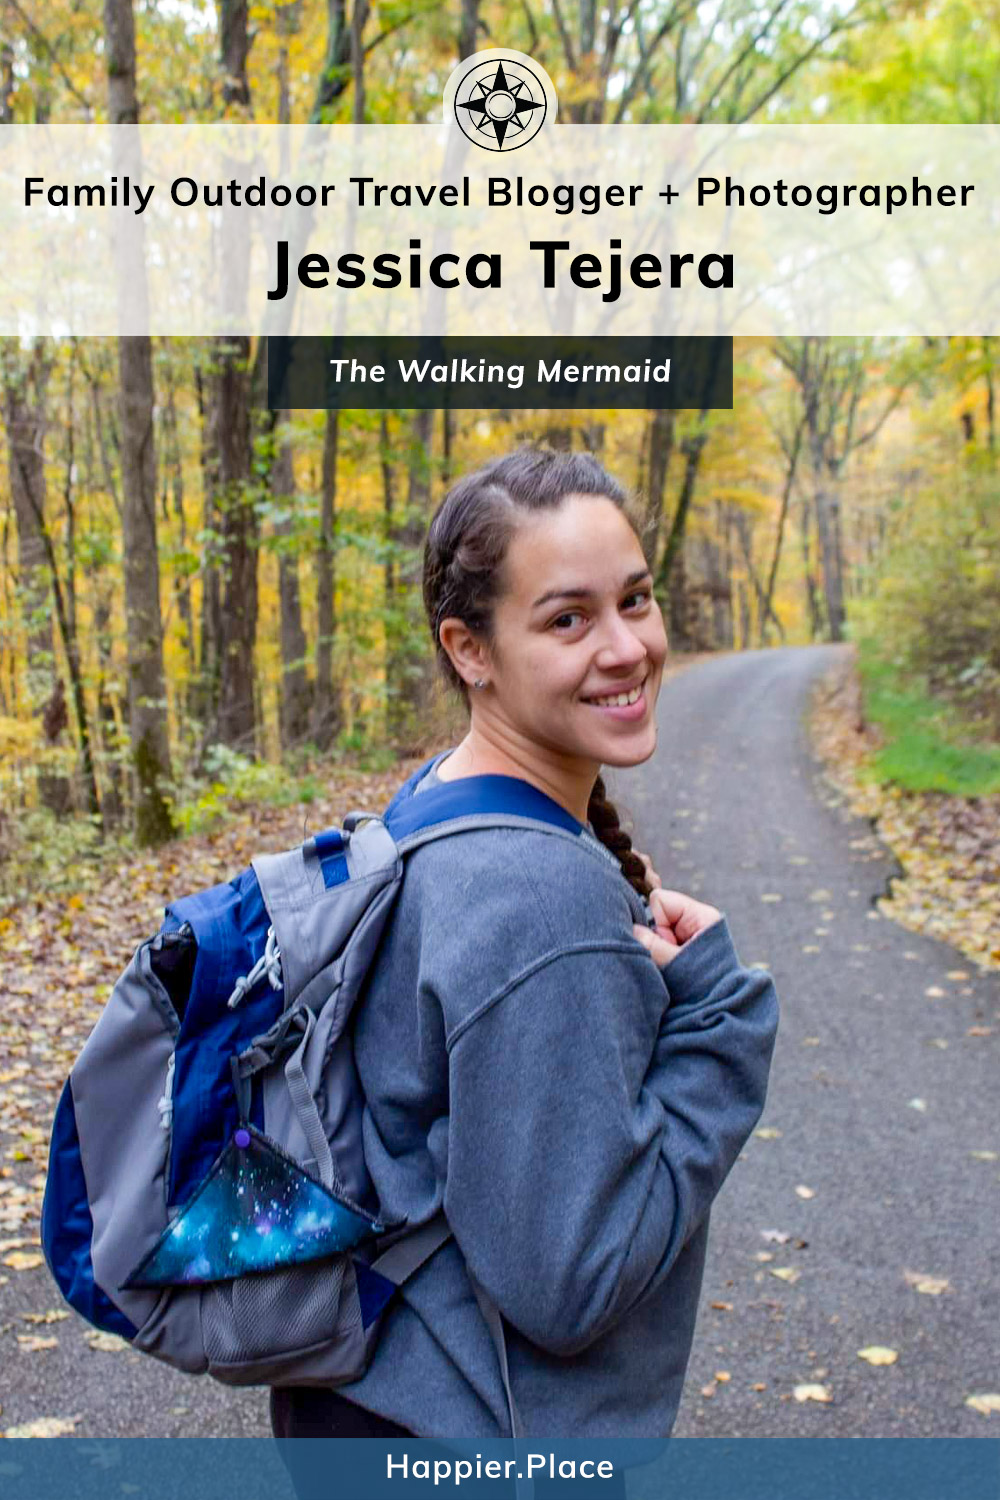 Jessica Tejera, The Walking Mermaid, Family Outdoor Travel Blogger and Photographer